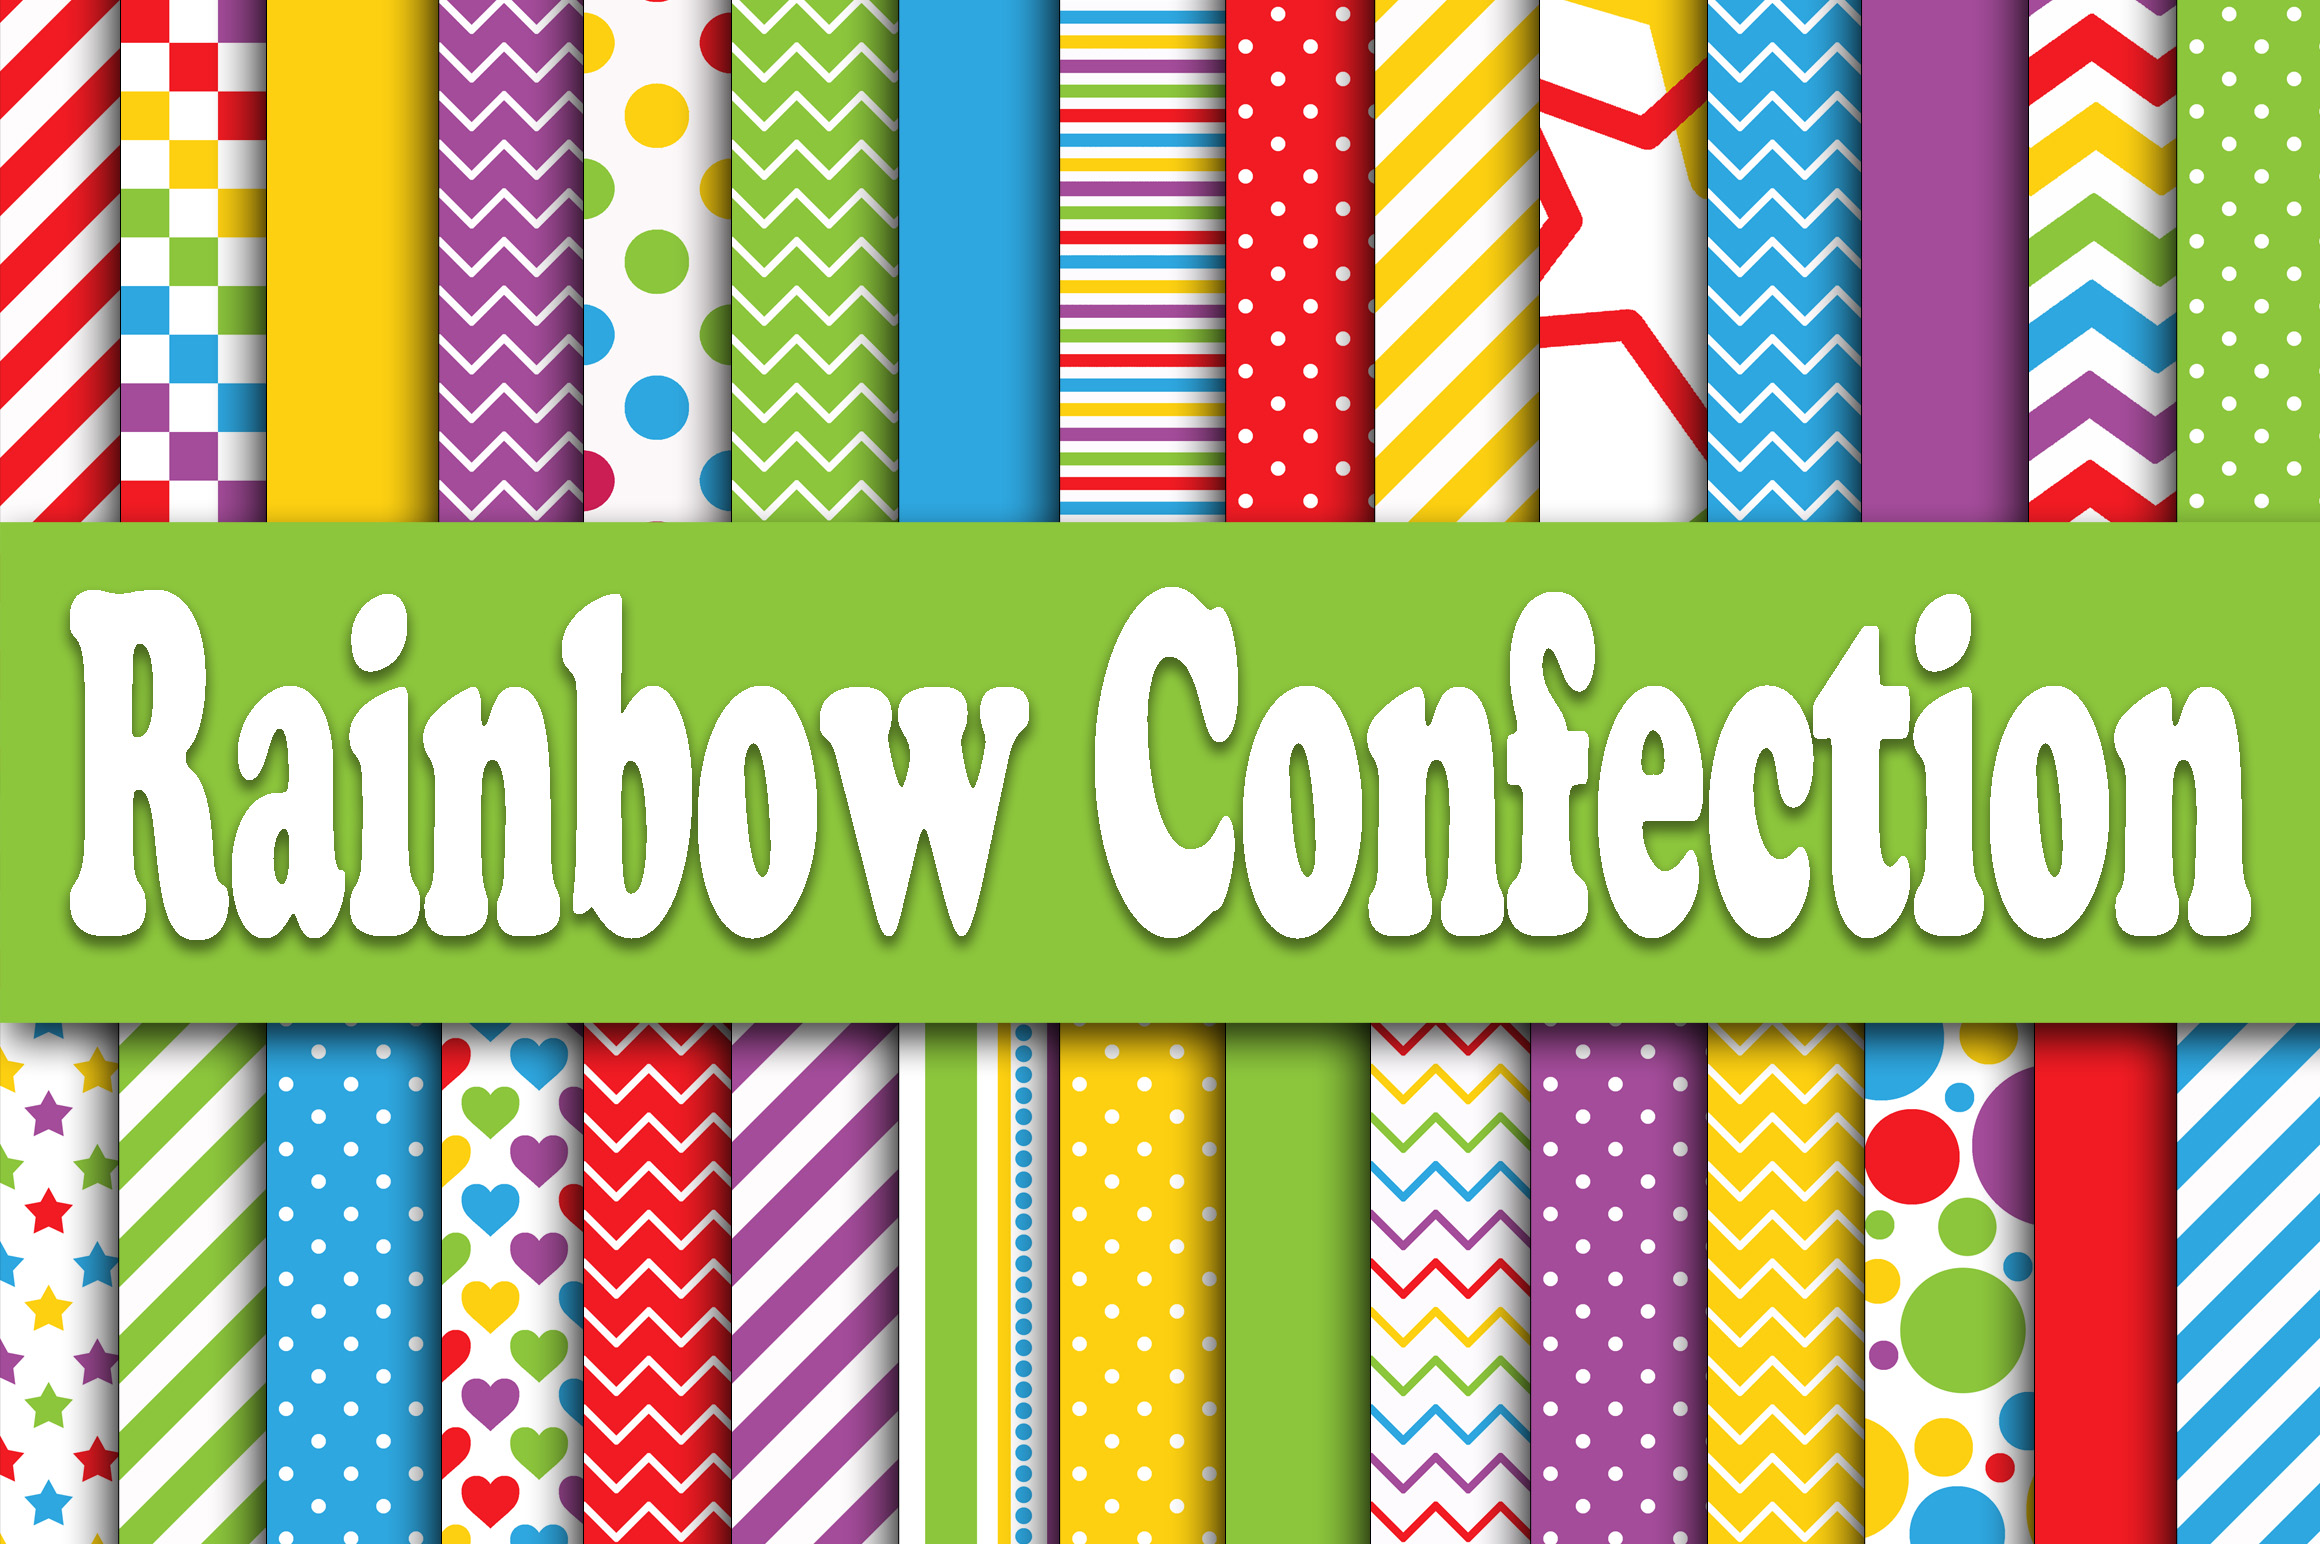 Rainbow Confection Digital Paper Graphic Backgrounds By oldmarketdesigns